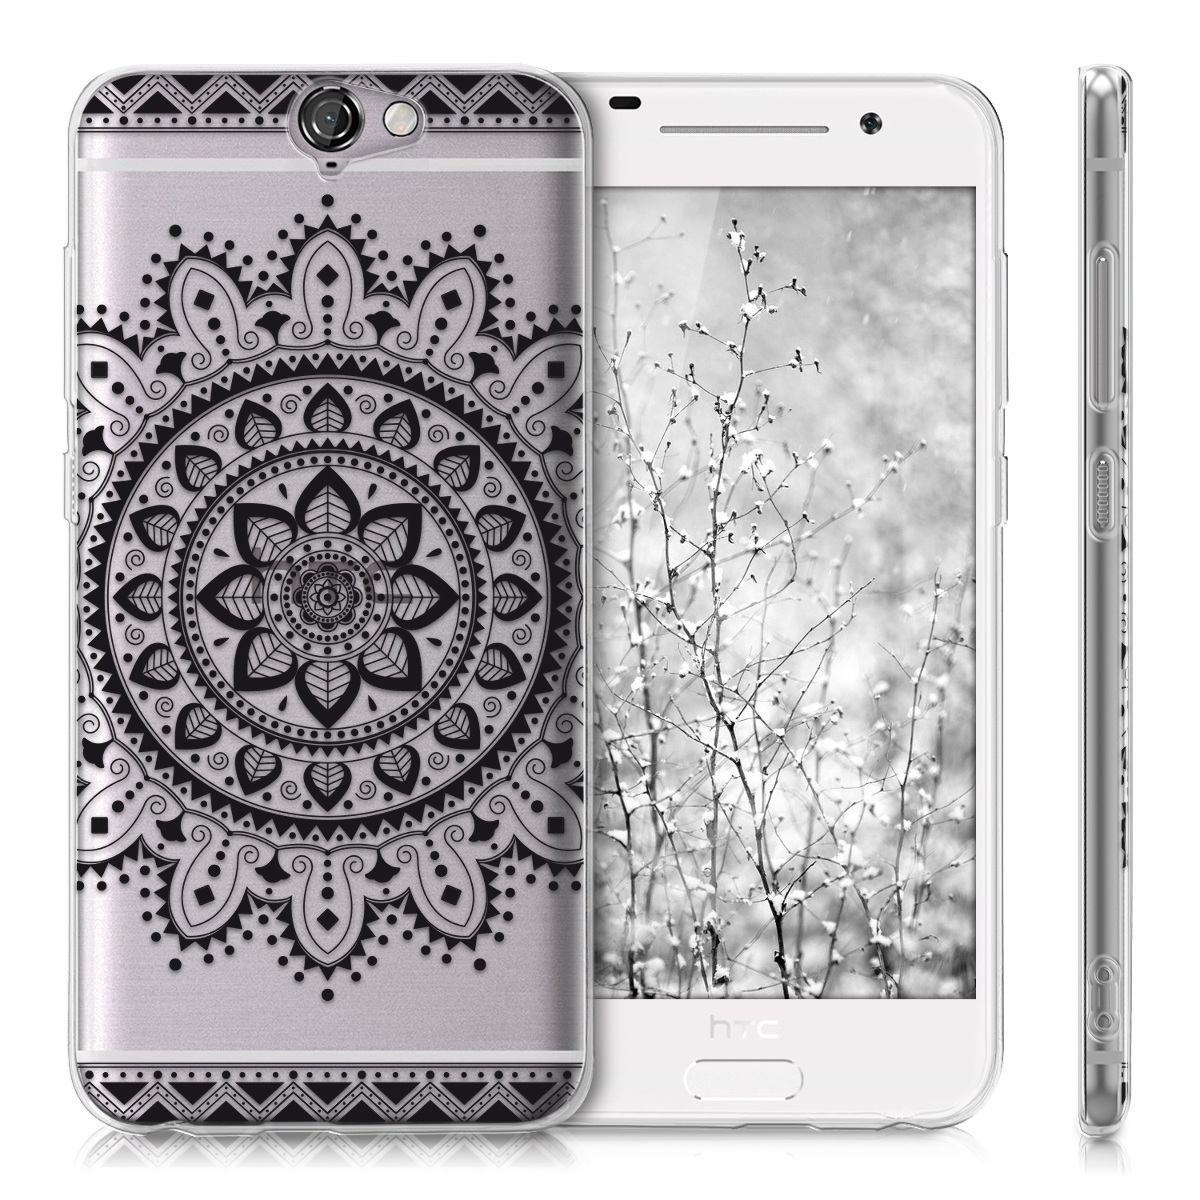 kwmobile-CRYSTAL-SILICONE-TPU-CASE-FOR-HTC-ONE-A9-IMD-DESIGN-WITH-SYNTHETIC